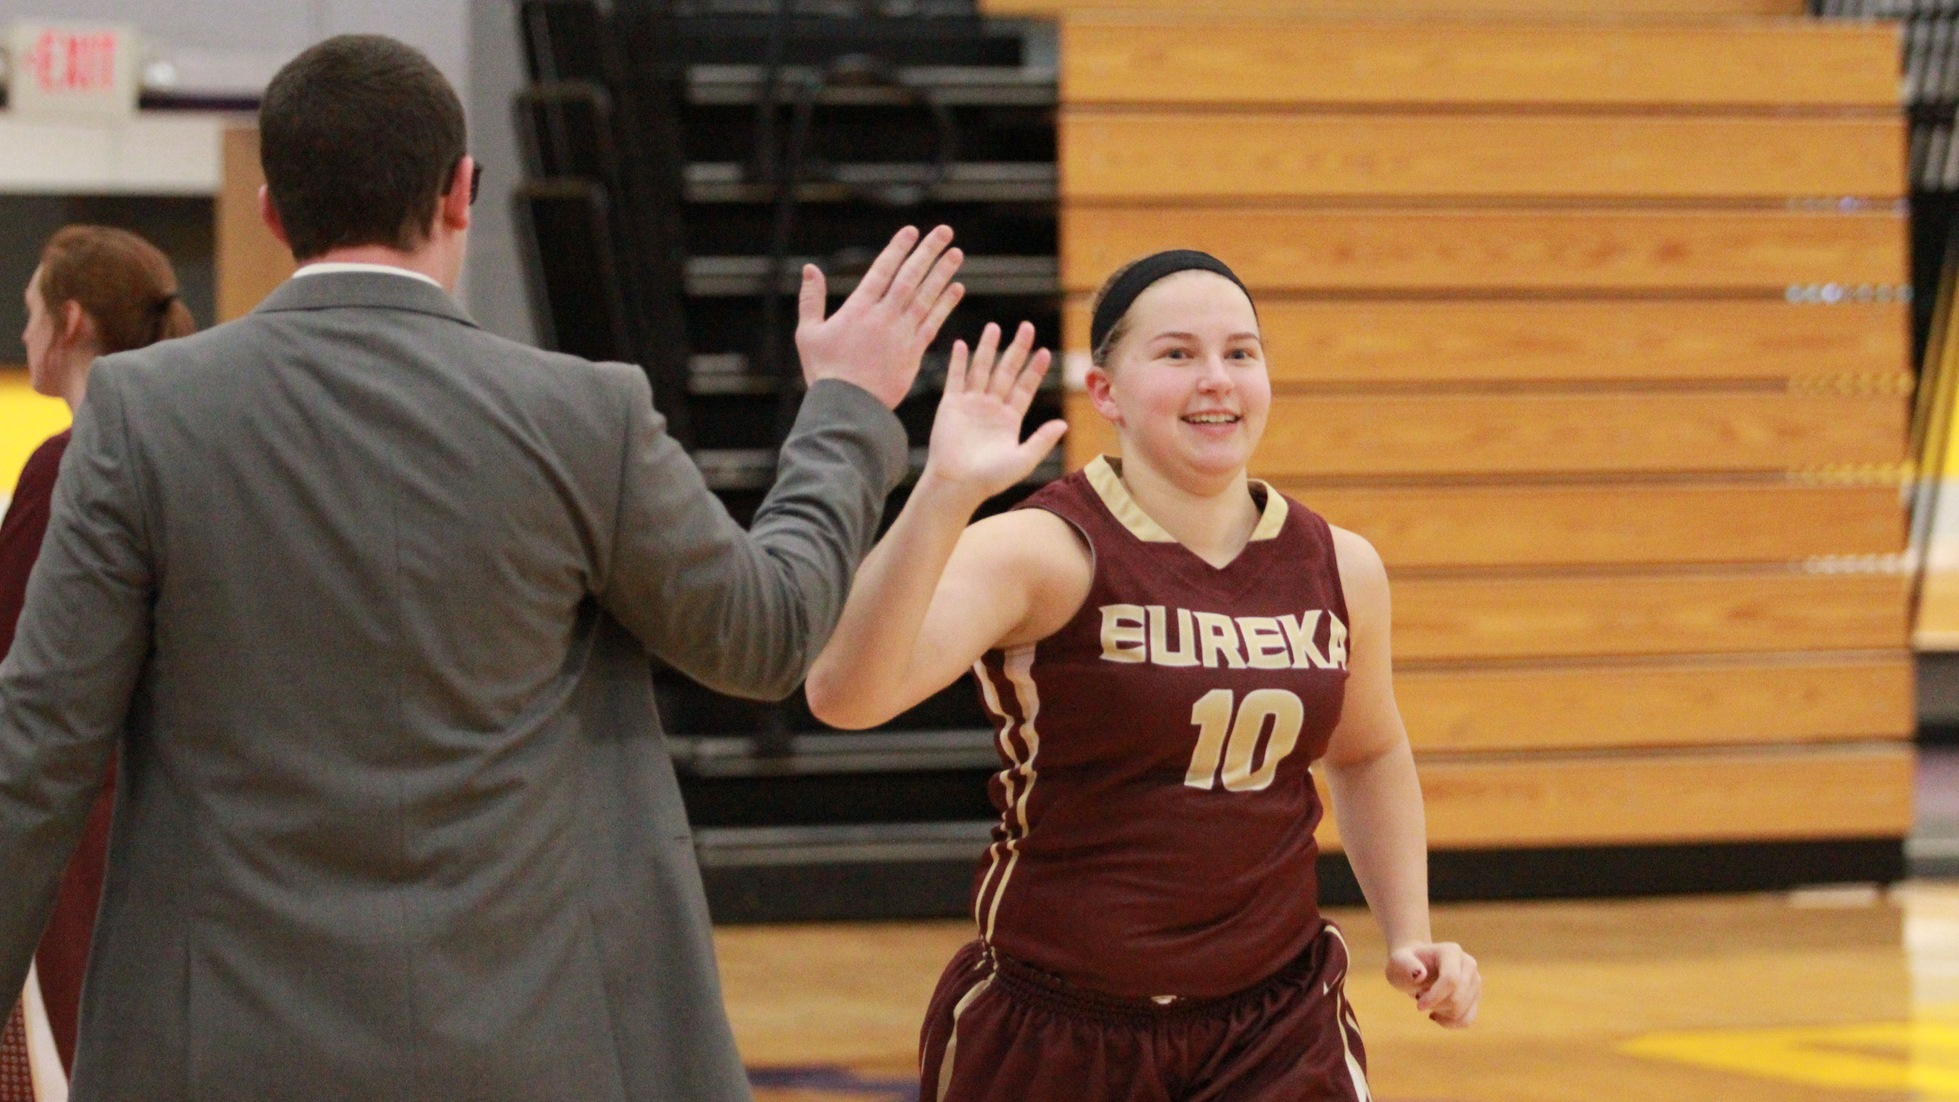 Unbeaten Eureka to Host St. Mary-of-the-Woods in Home Opener